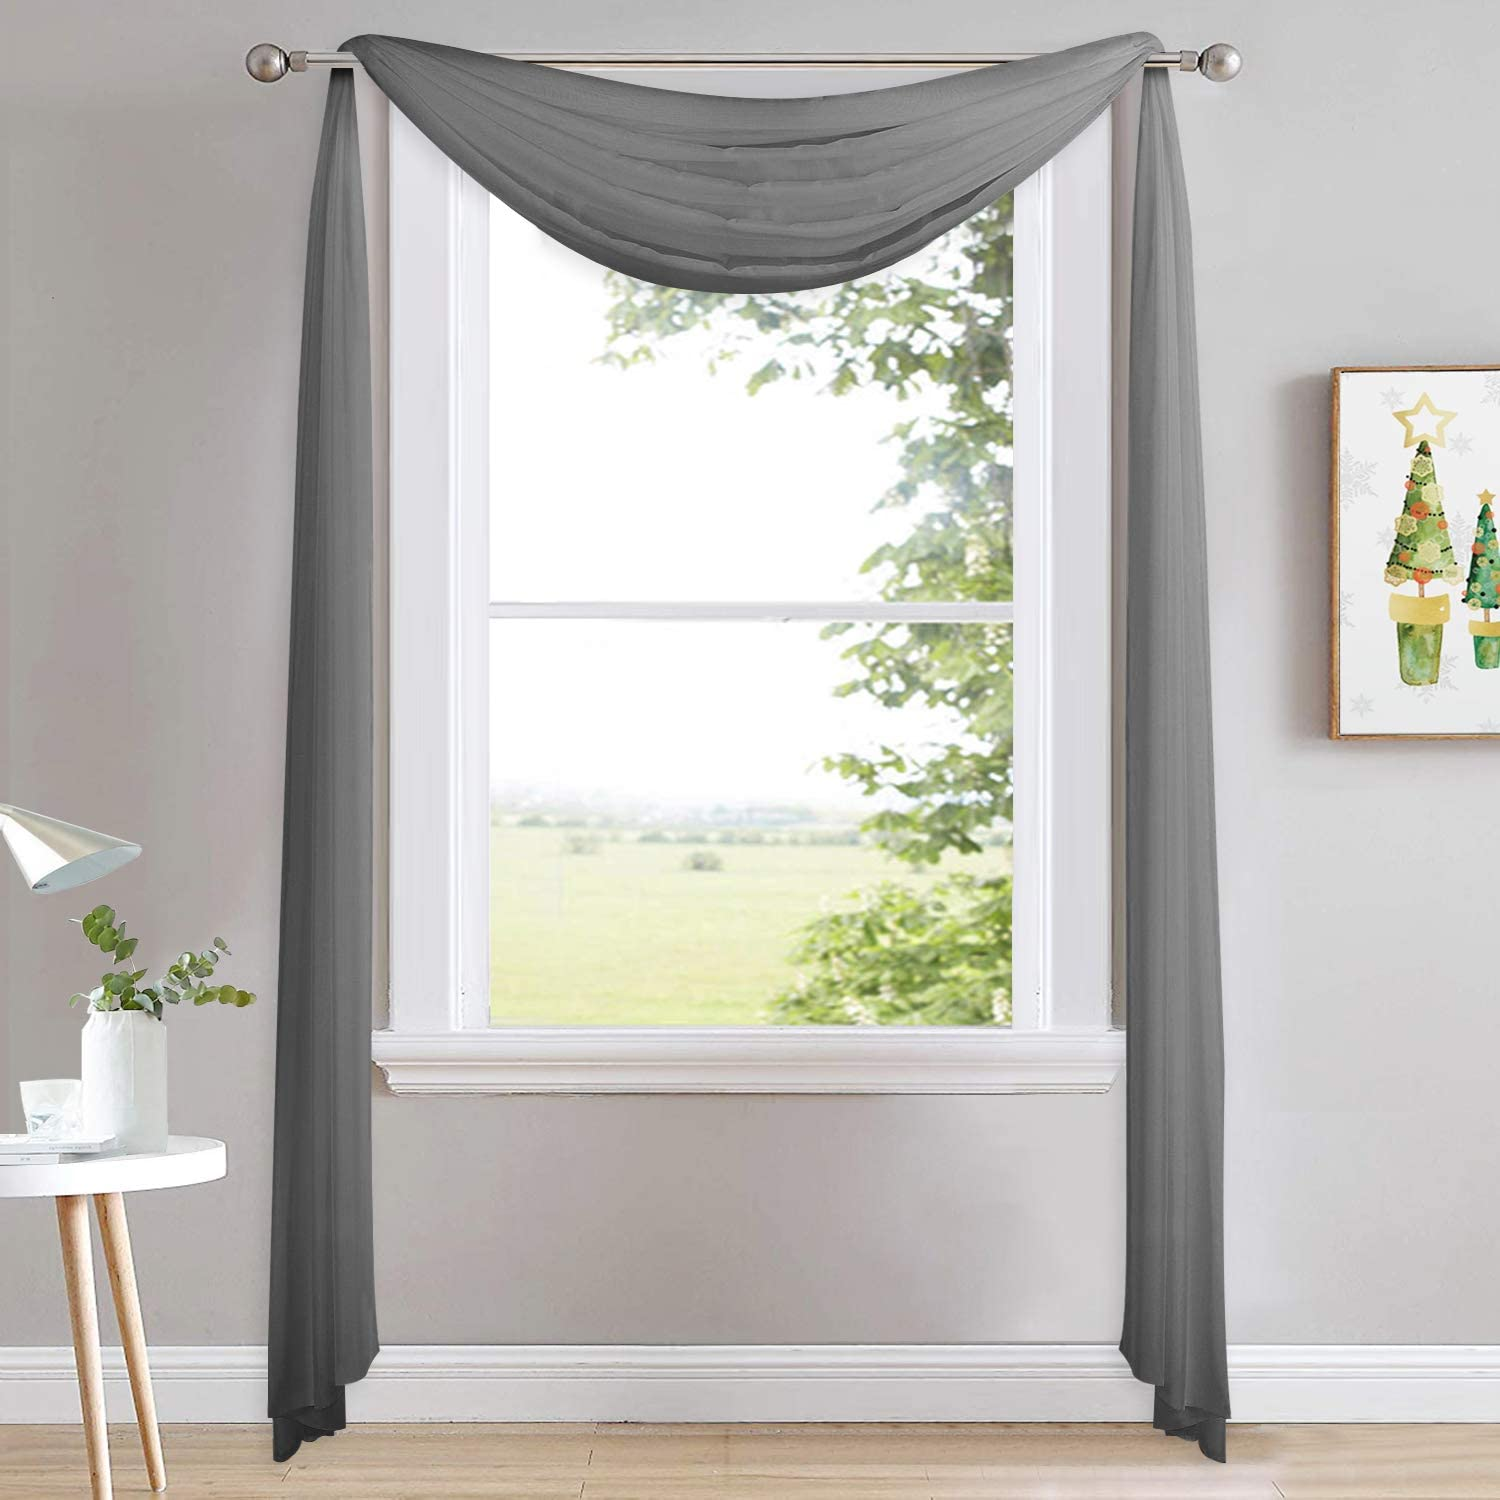 NICETOWN Bed Canopy Scarf Curtain Sheer Textured - Multifunctional Window Topper Scarf Home Decor Voile Valance for Party/Carnival (Sold Individually, W60 x L216, Dark Gray)